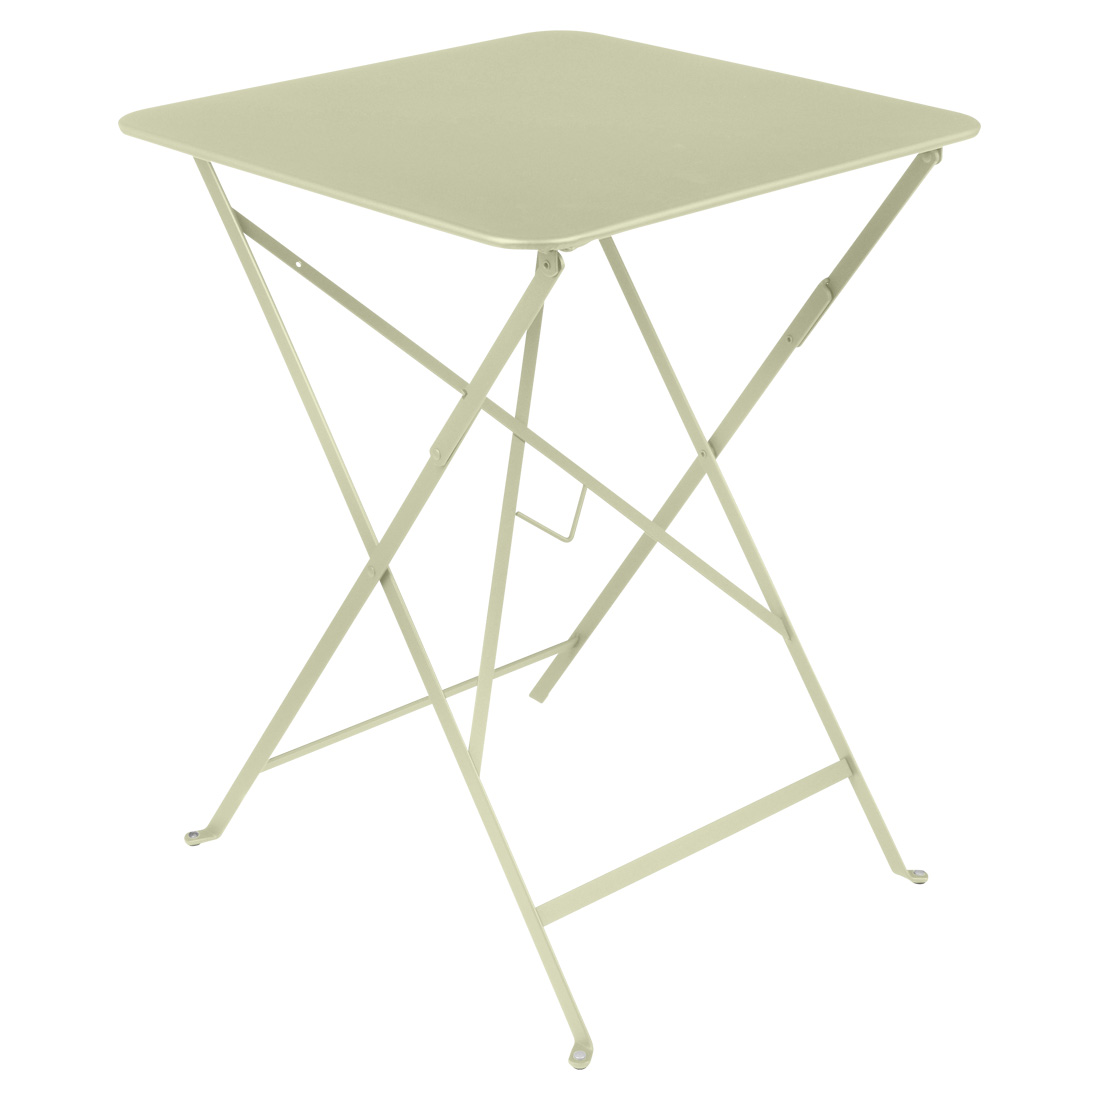 Bistro Square Table 57cm - Willow Green